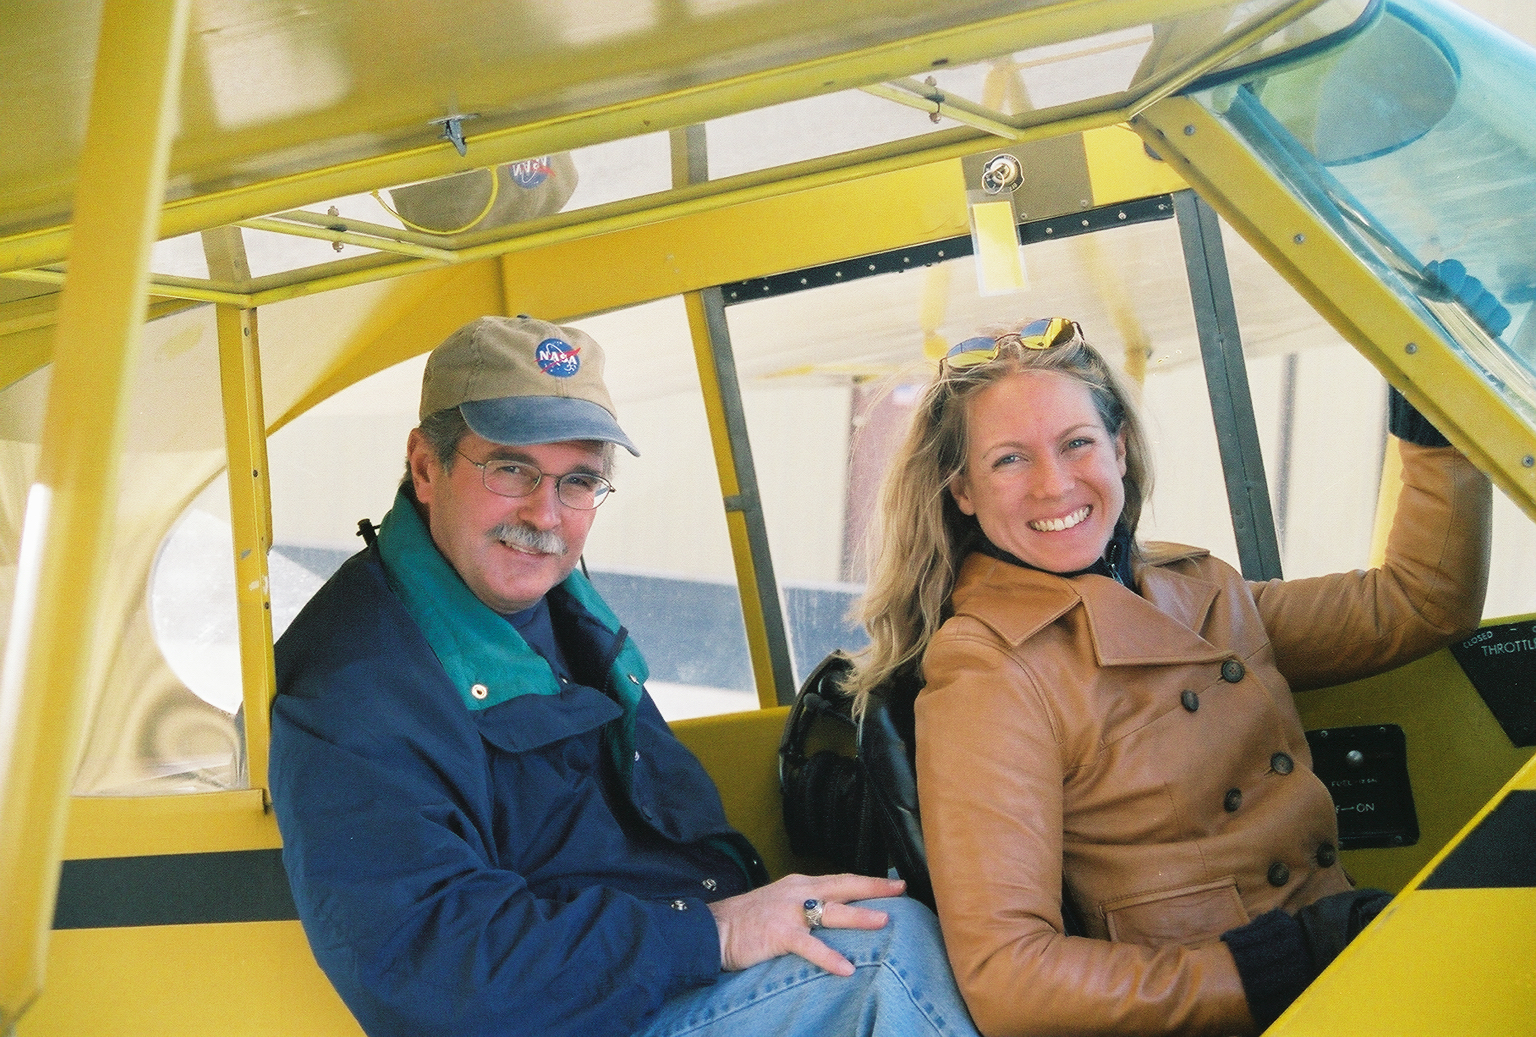 John and Heather Penney sitting in the cockpit of a yellow plane.